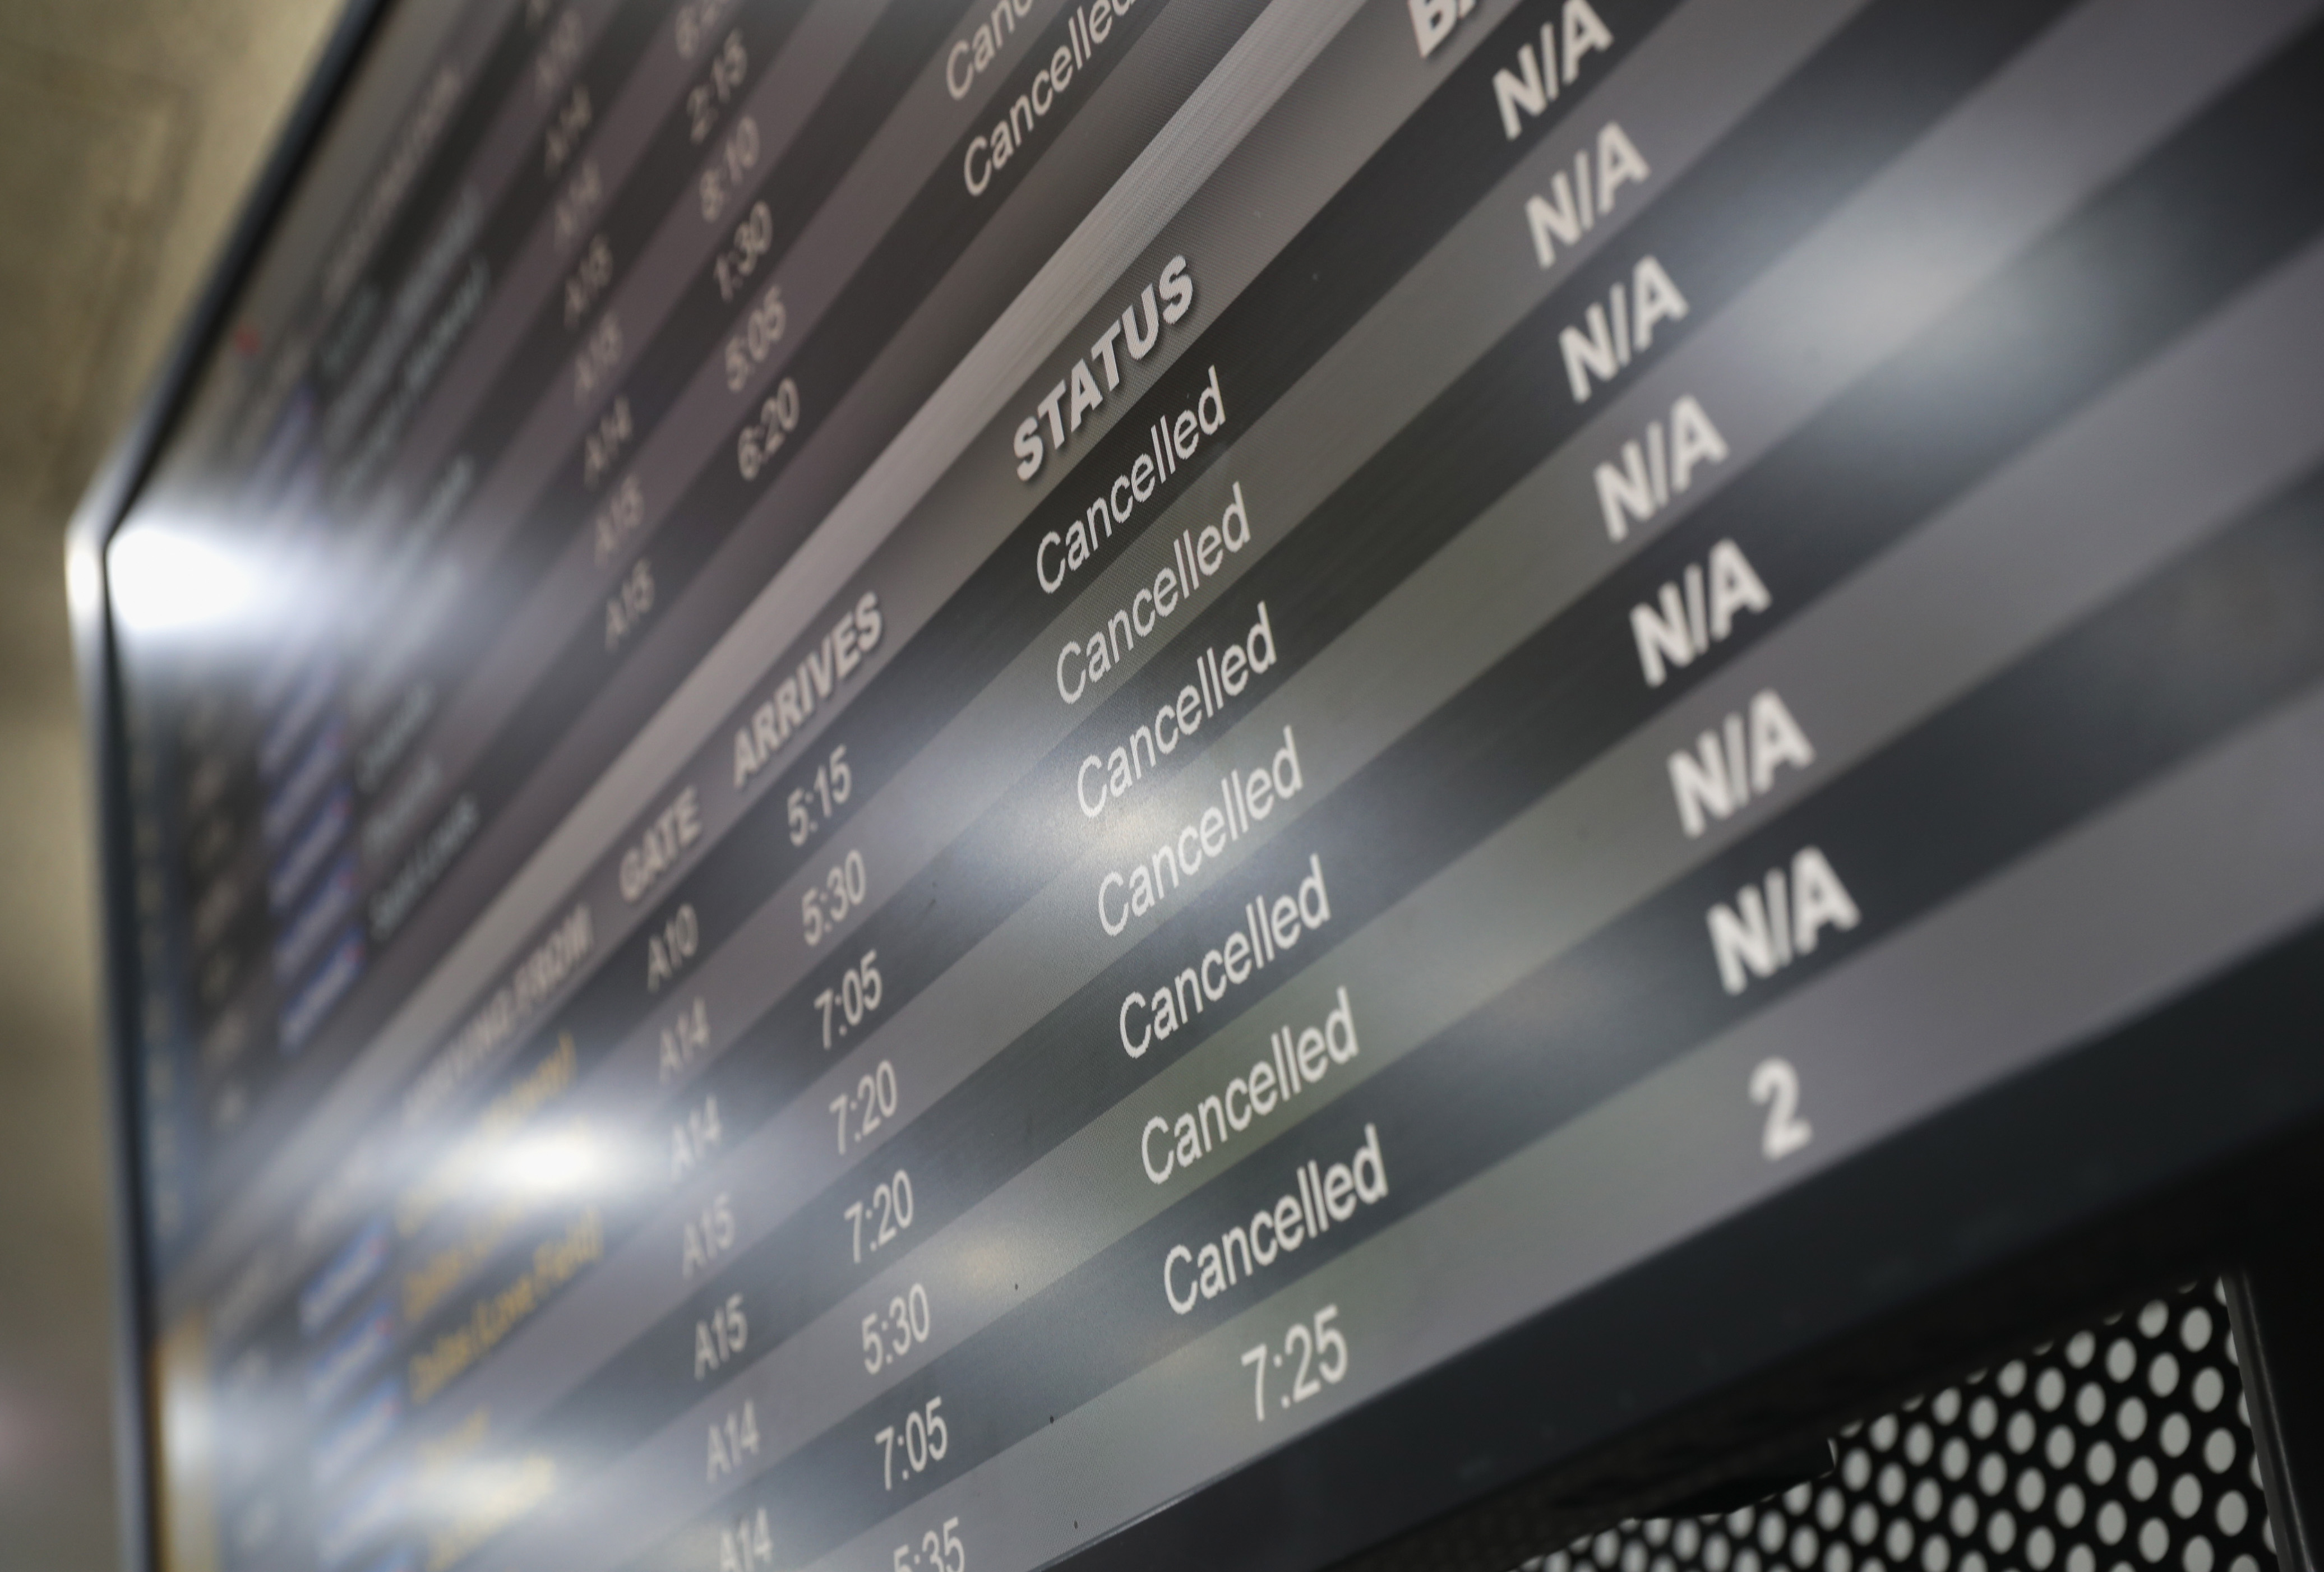 NEWARK, NJ - NOVEMBER 15:  A board shows cancelled flights due to a snow storm at the Newark Liberty International Airport on November 15, 2018 in Newark, New Jersey. The early season storm caused flight cancellations in much of the northeast.  (Photo by John Moore/Getty Images)